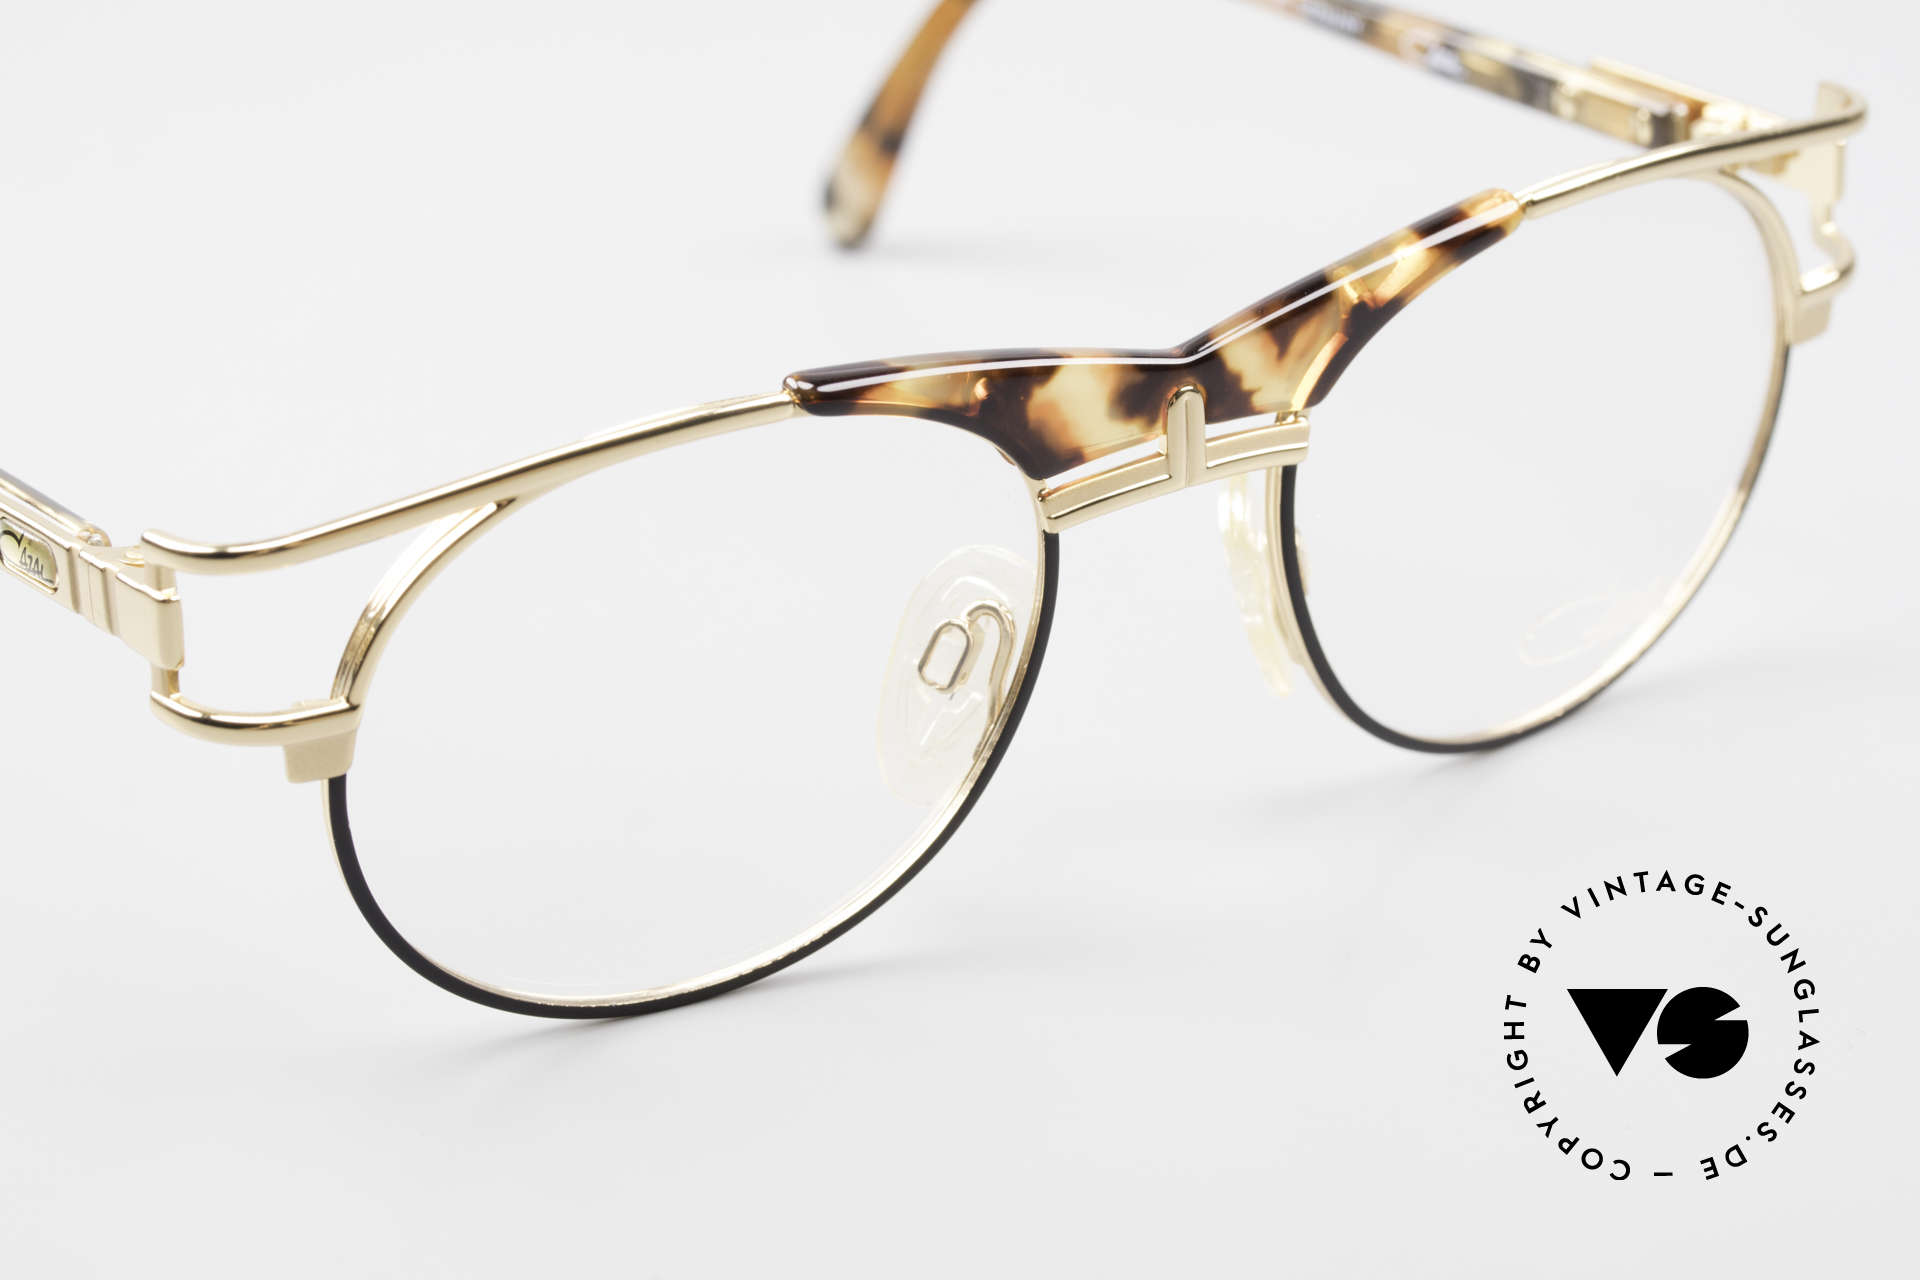 Cazal 244 Iconic 90's Vintage Eyeglasses, NO RETRO SPECS, but a 25 years old ORIGINAL!, Made for Men and Women